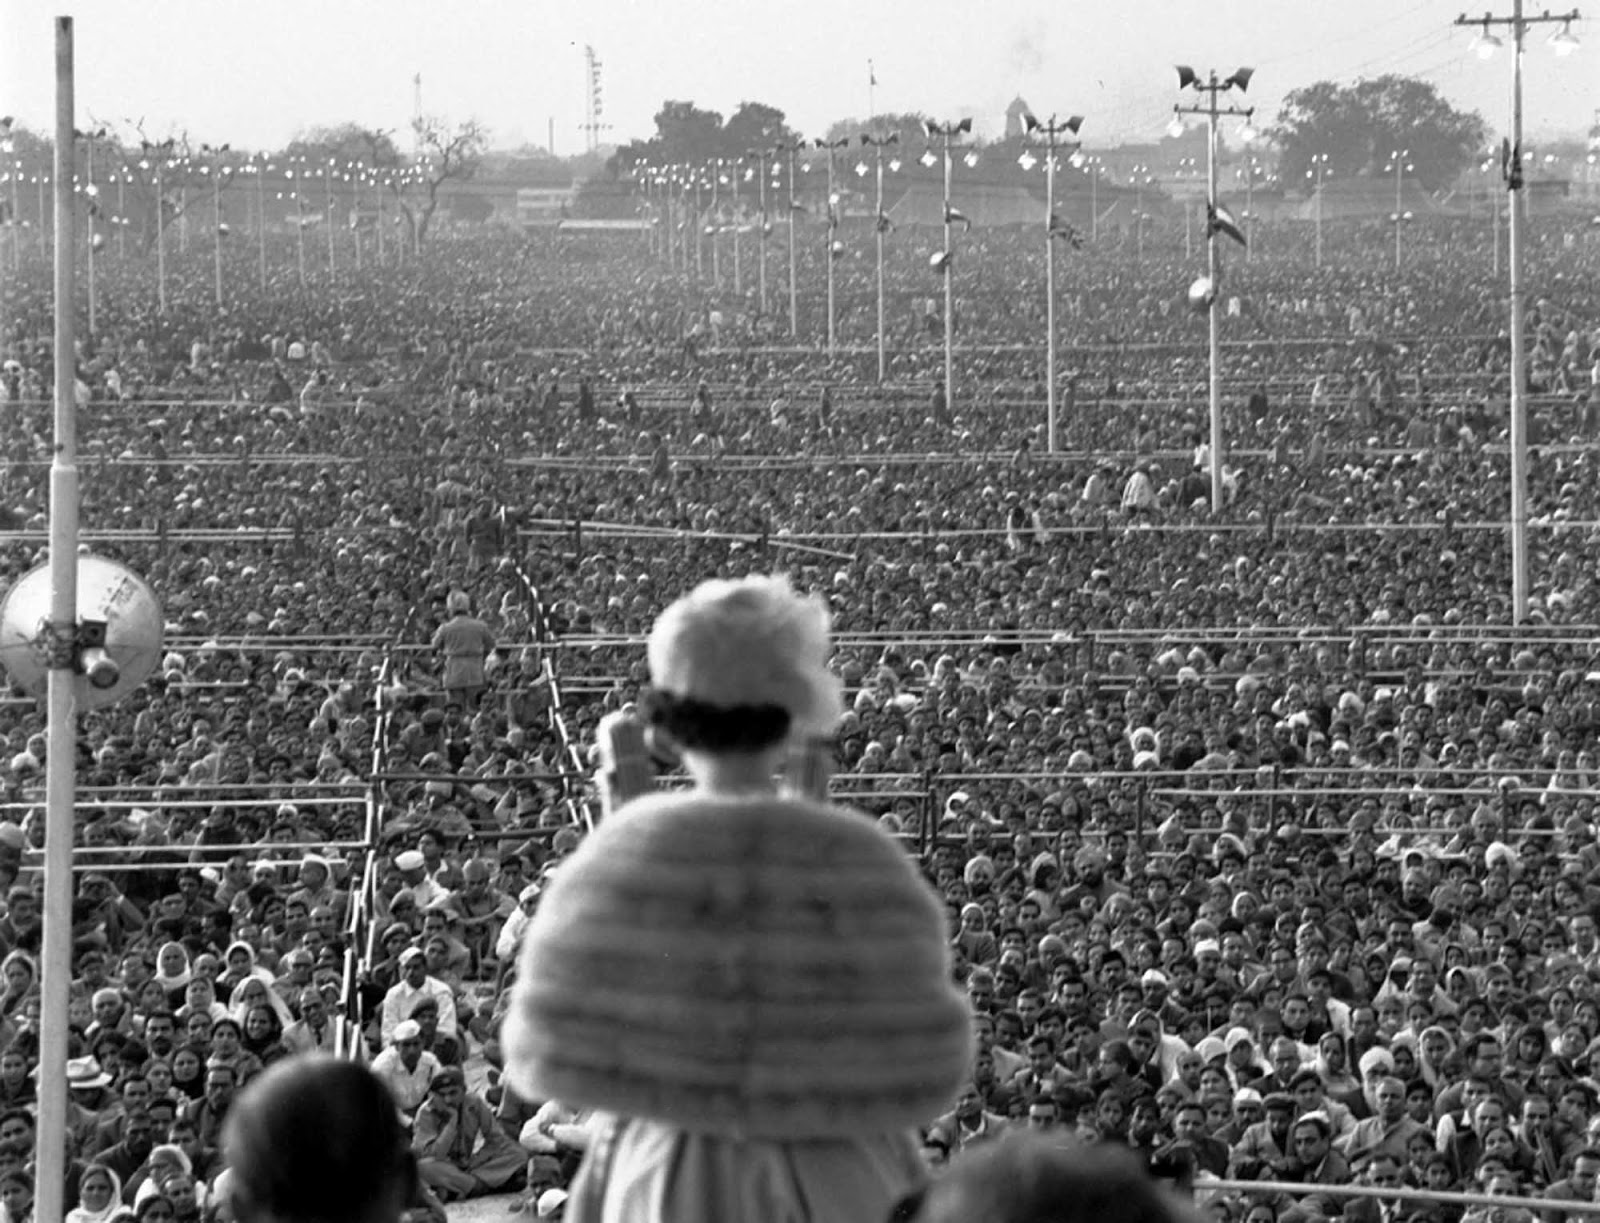 Did You Know? Queen Elizabeth II visited Udaipur